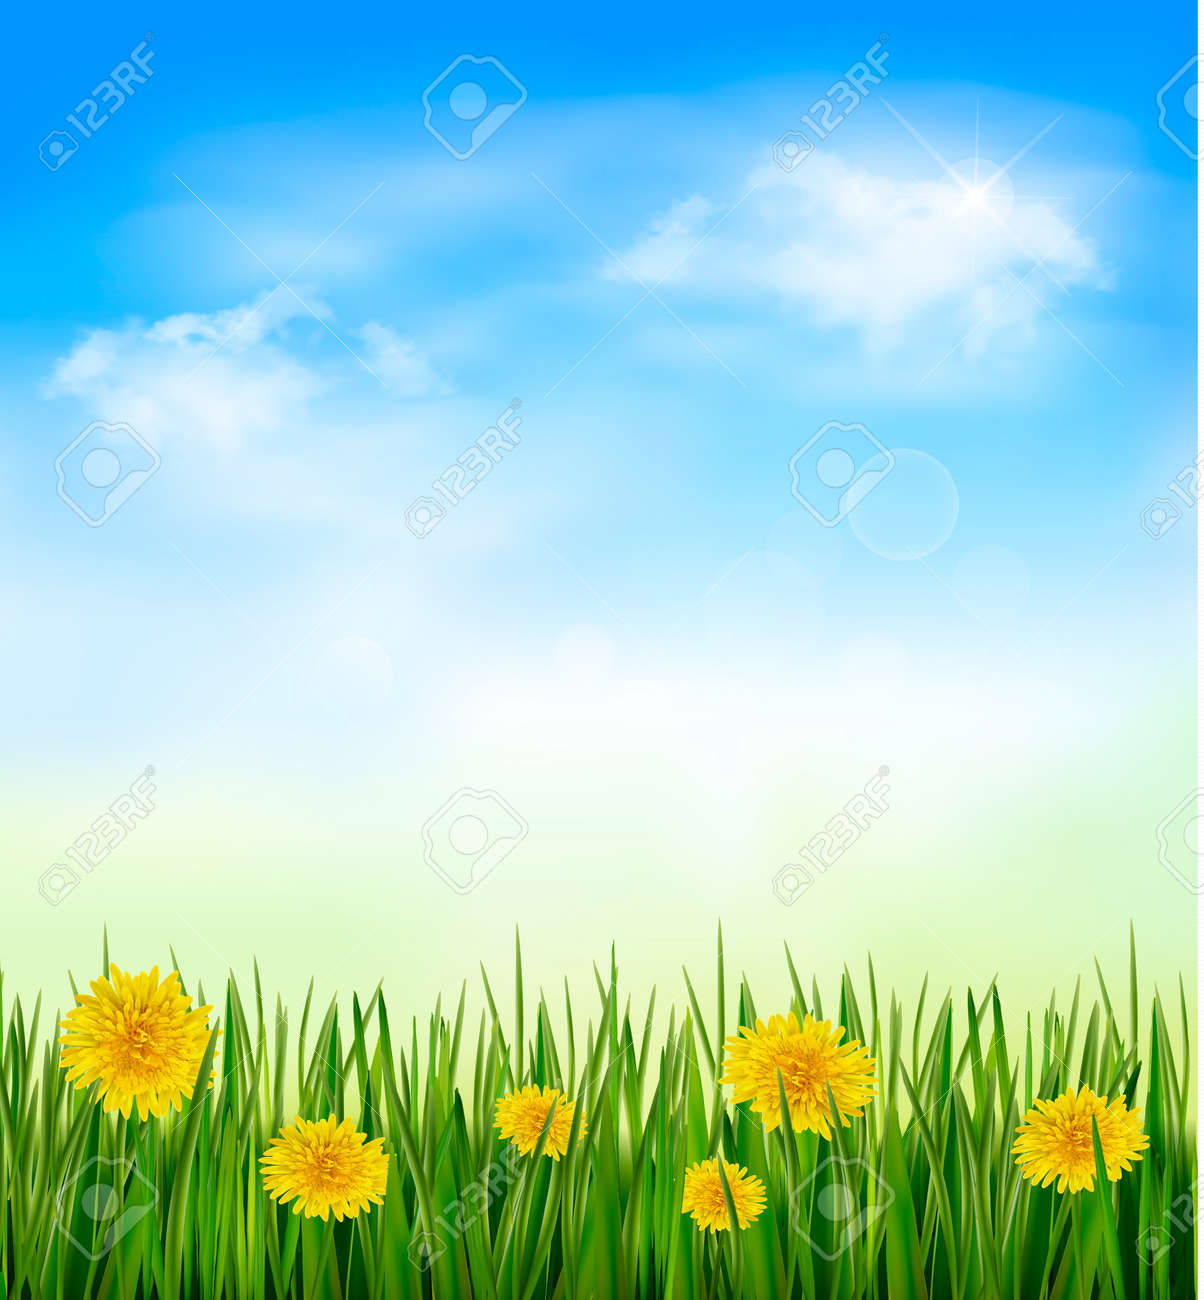 green grass blue sky flowers fence background nature background with green grass and flowers blue sky stock vector 20193246 background with green grass and flowers blue sky royalty